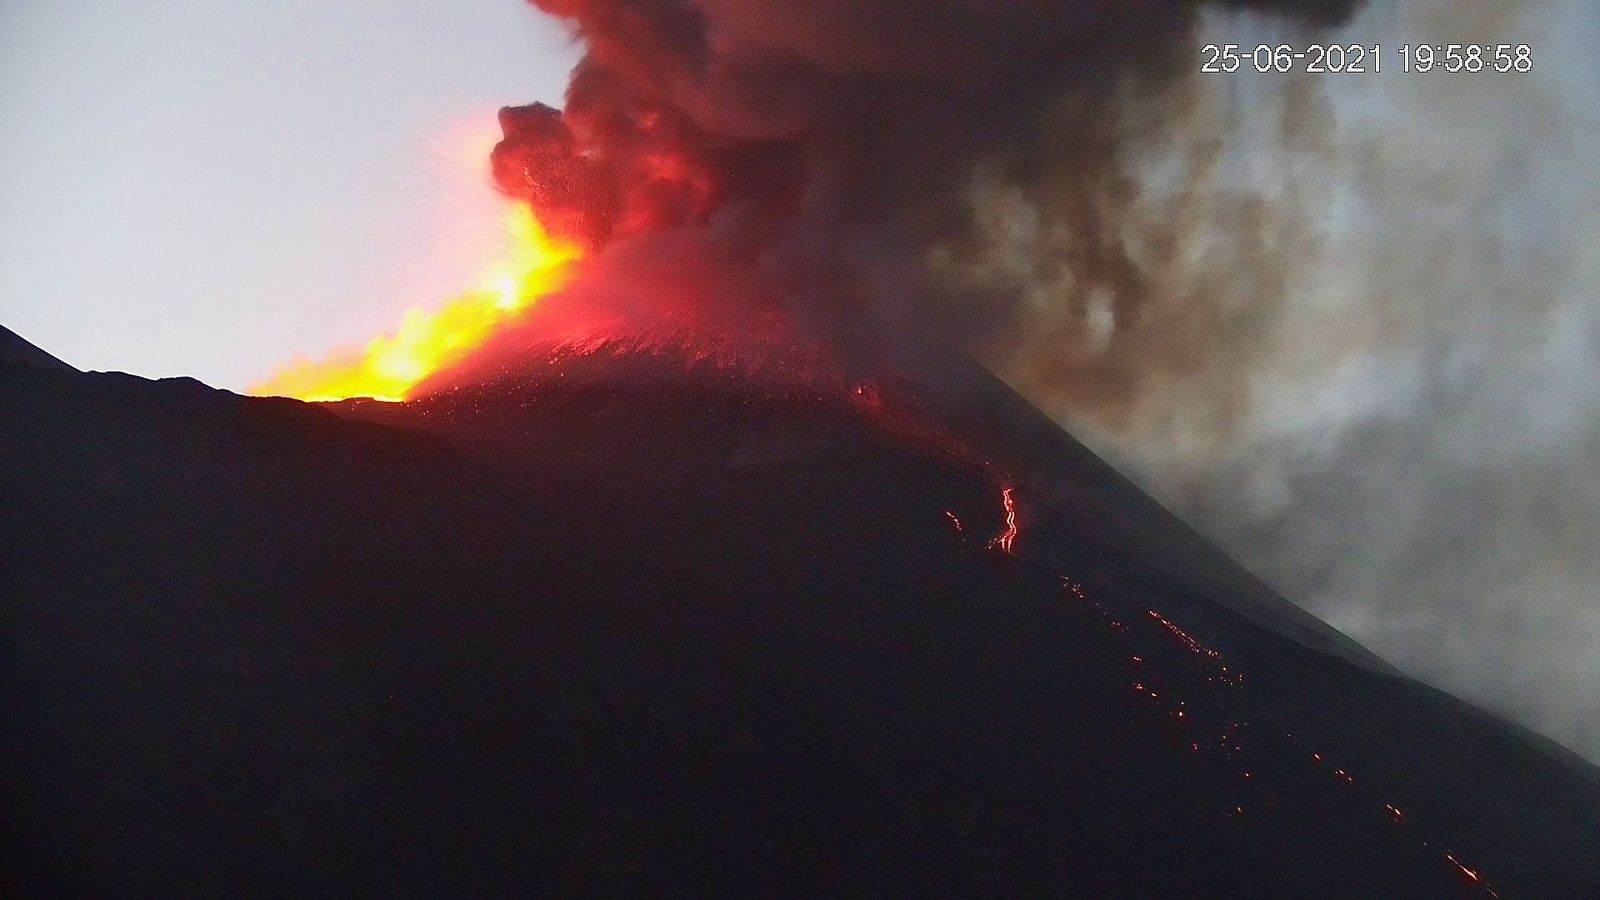 Etna SEC - ash plume and lava fountain of 25.06.2021 / times indicated - new webcam LAVE